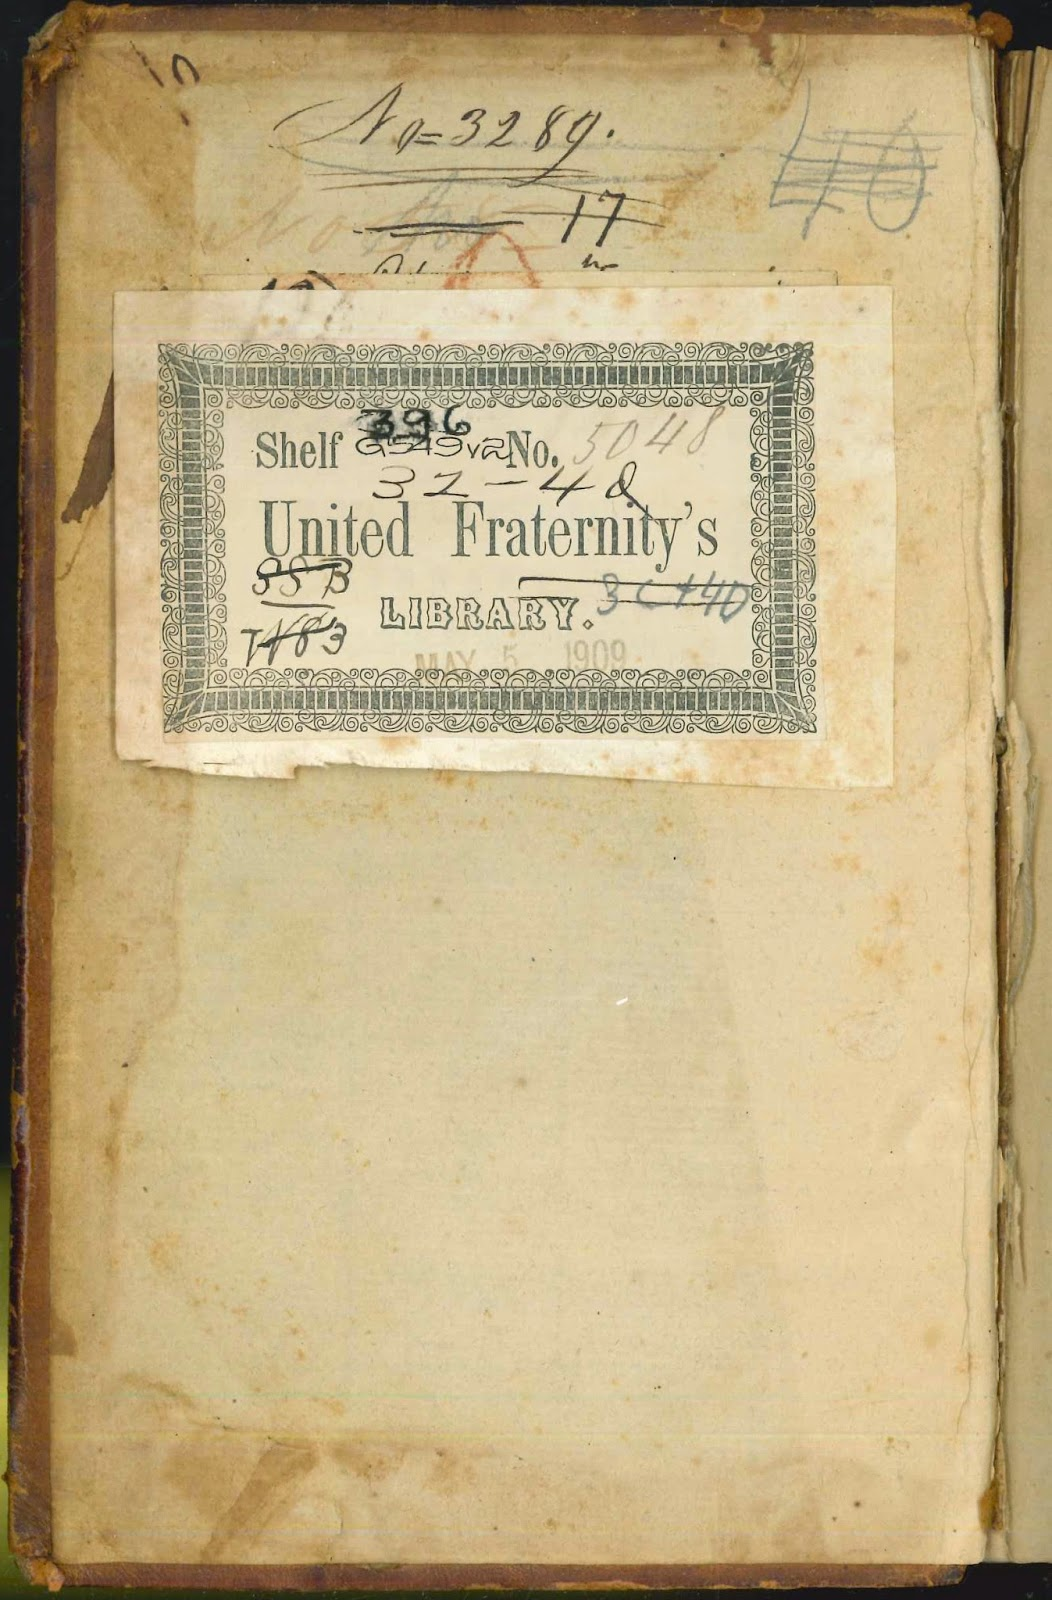 A bookplate for the United Fraternity's Library.